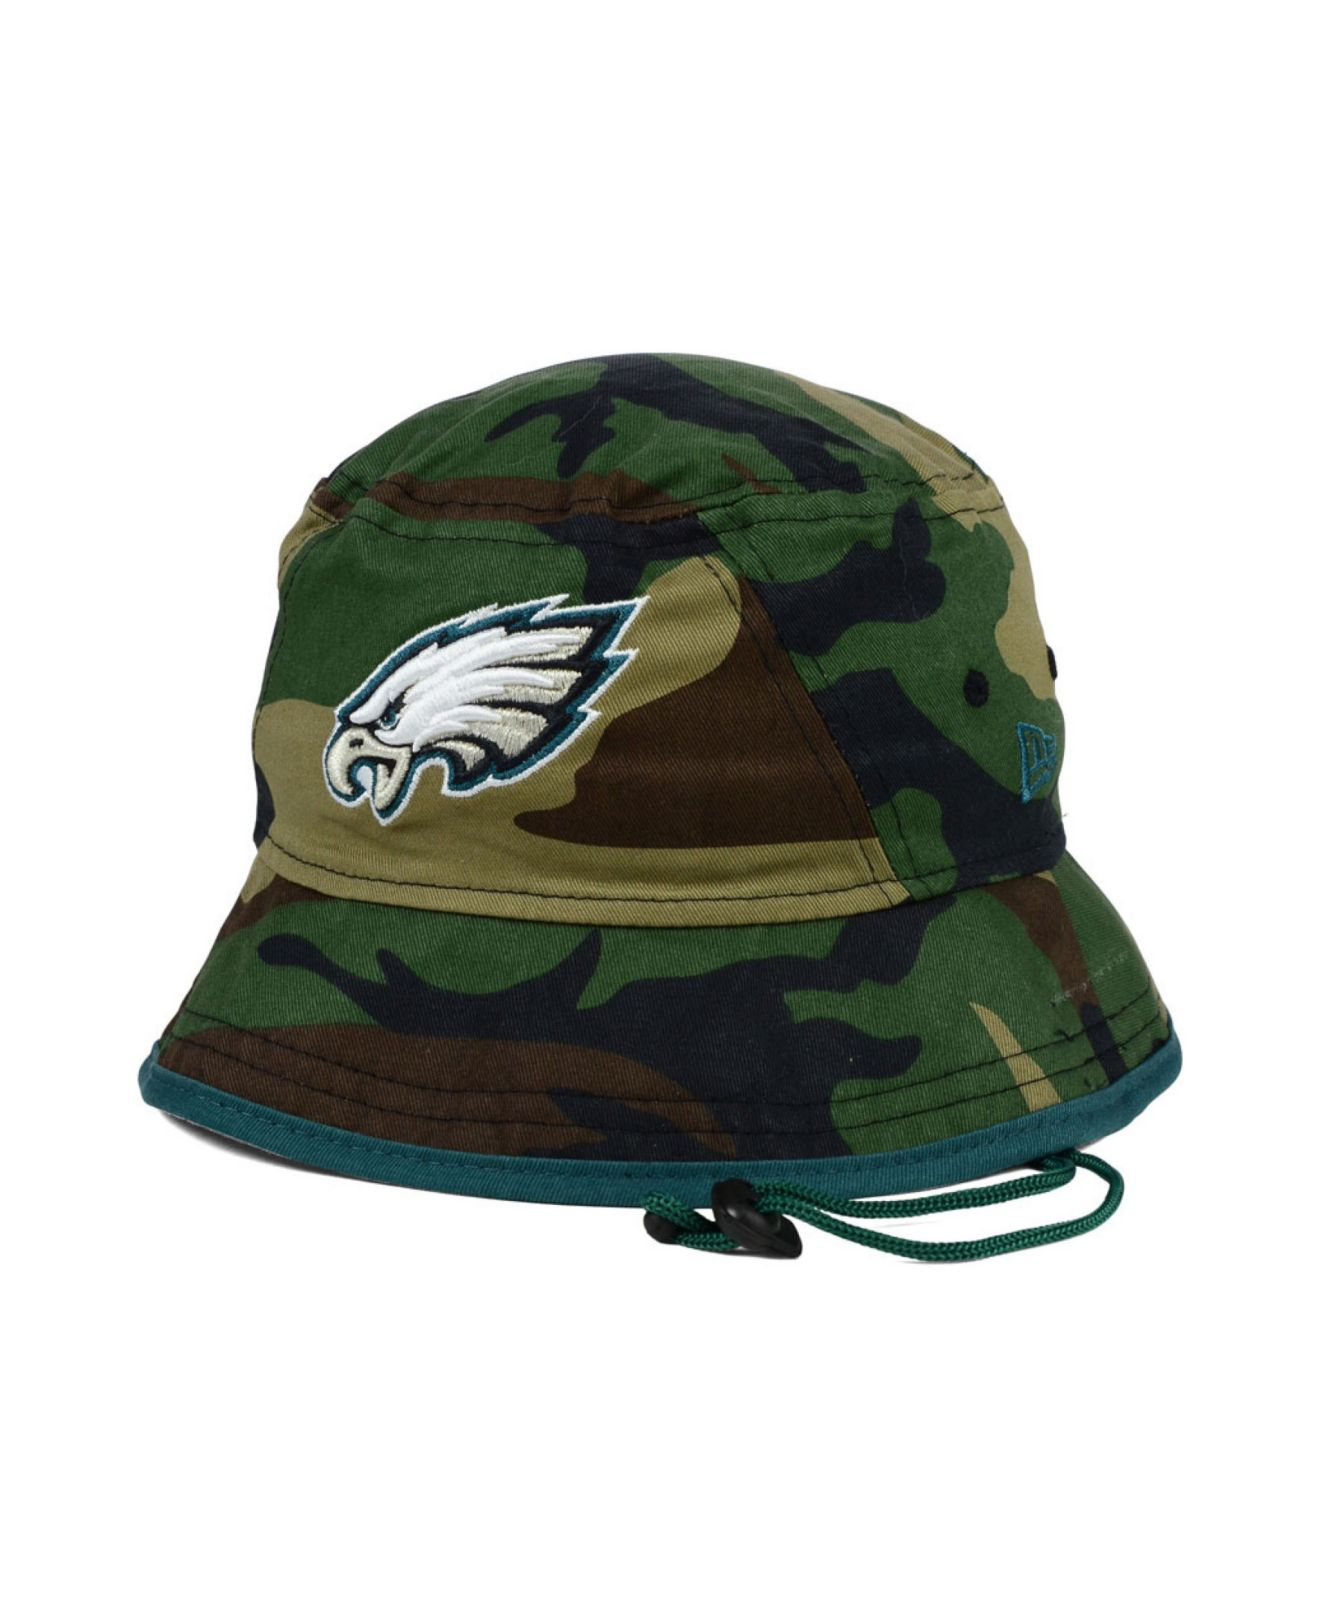 separation shoes 450d5 a13cf ... aliexpress lyst ktz philadelphia eagles camo pop bucket hat in green  for men 2f54f 2be7d